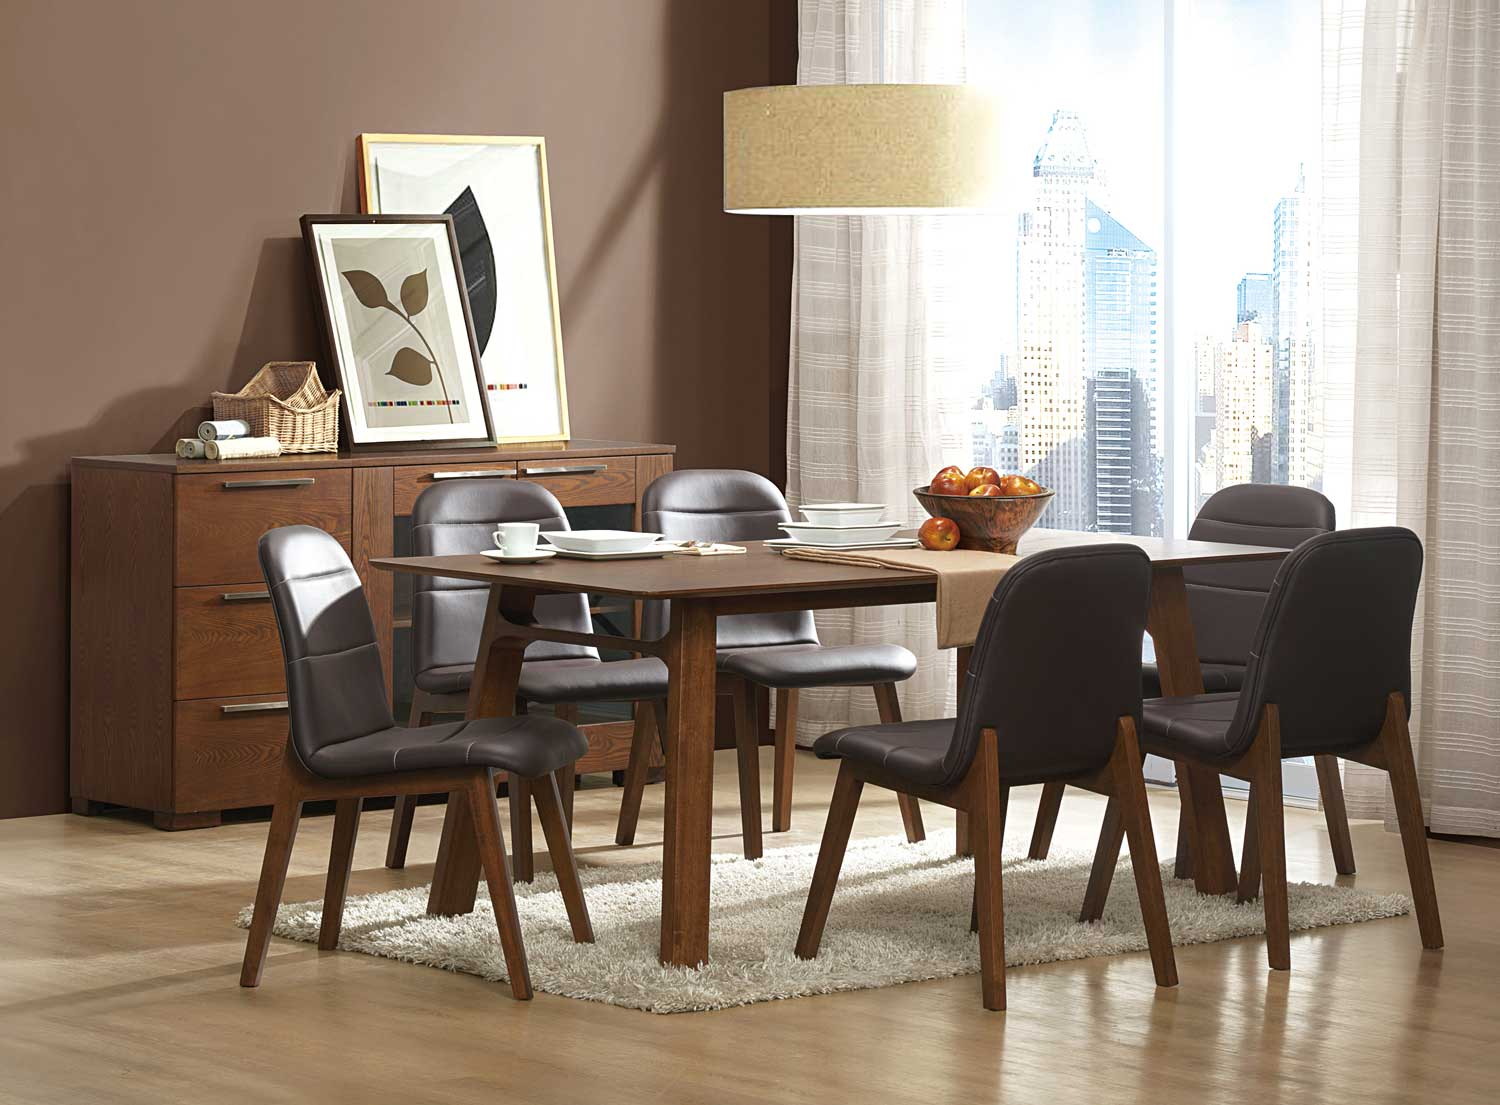 Homelegance Juno Dining Set - Walnut